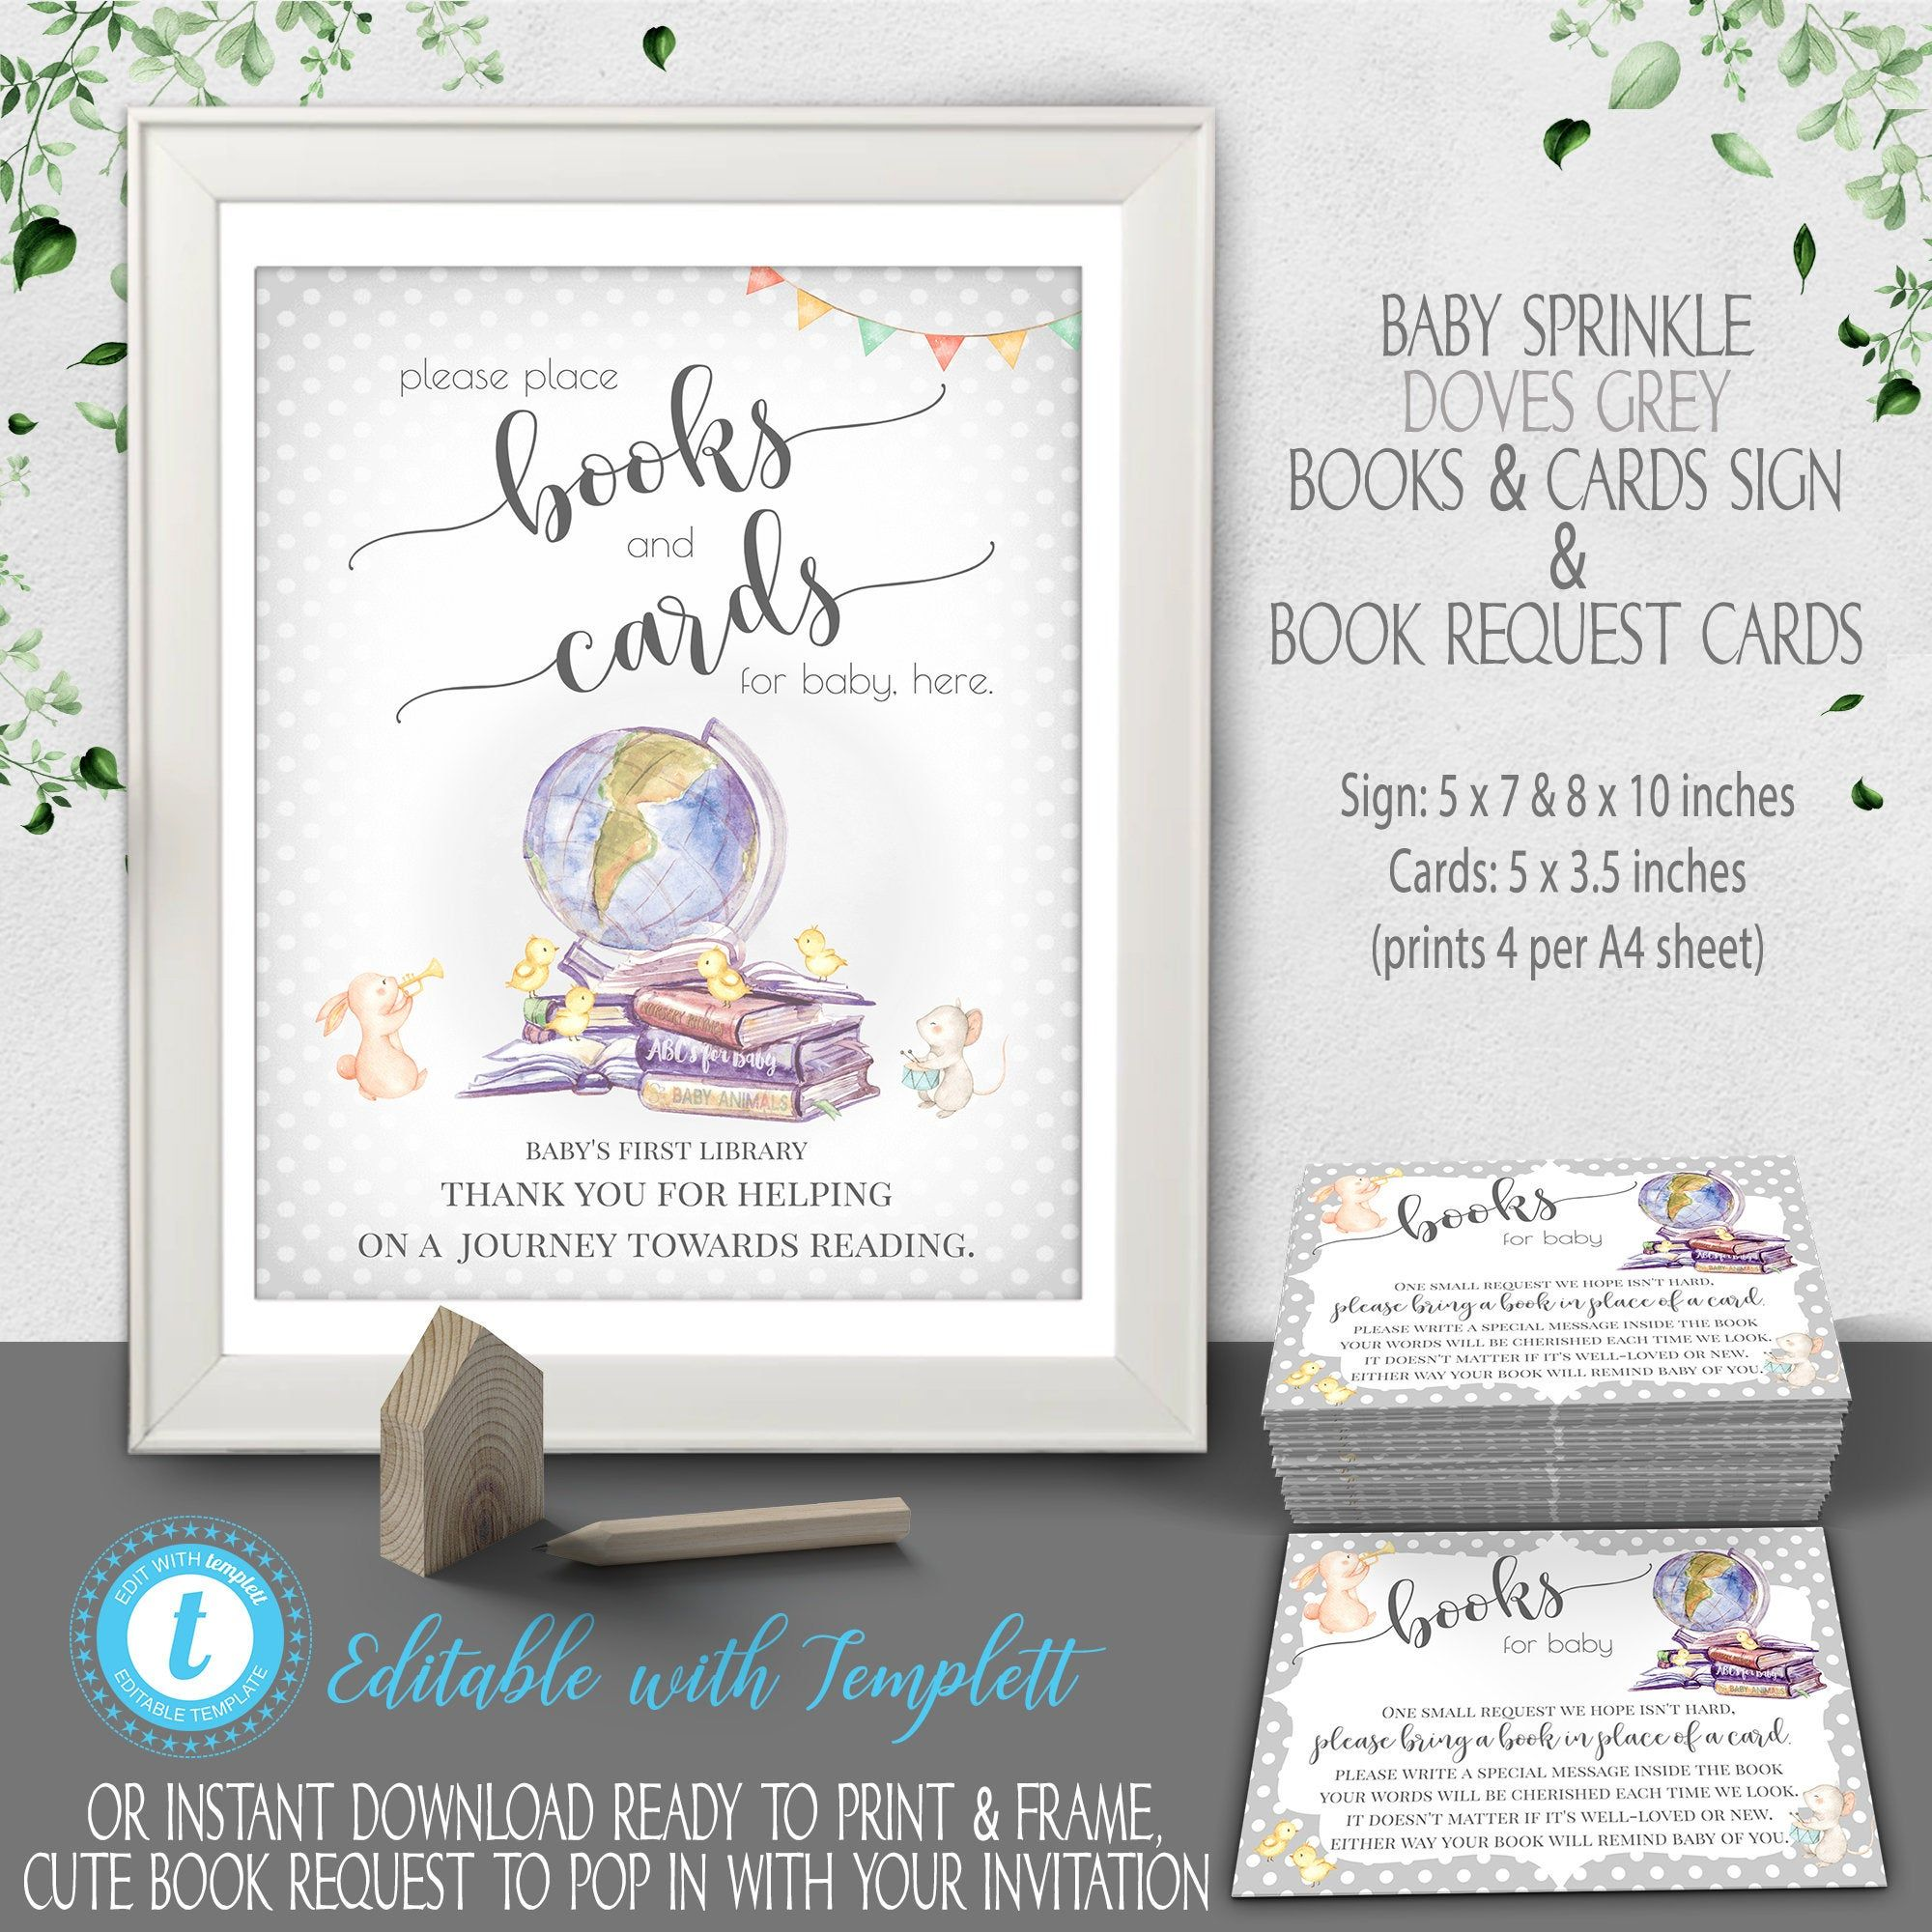 Baby Shower Book Request Bring A Book For Baby Cards Baby Shower Sign Printable Baby Shower Instead Of A Card Instant Download Bs005 Baby Shower Insert Cards Sign Baby Shower